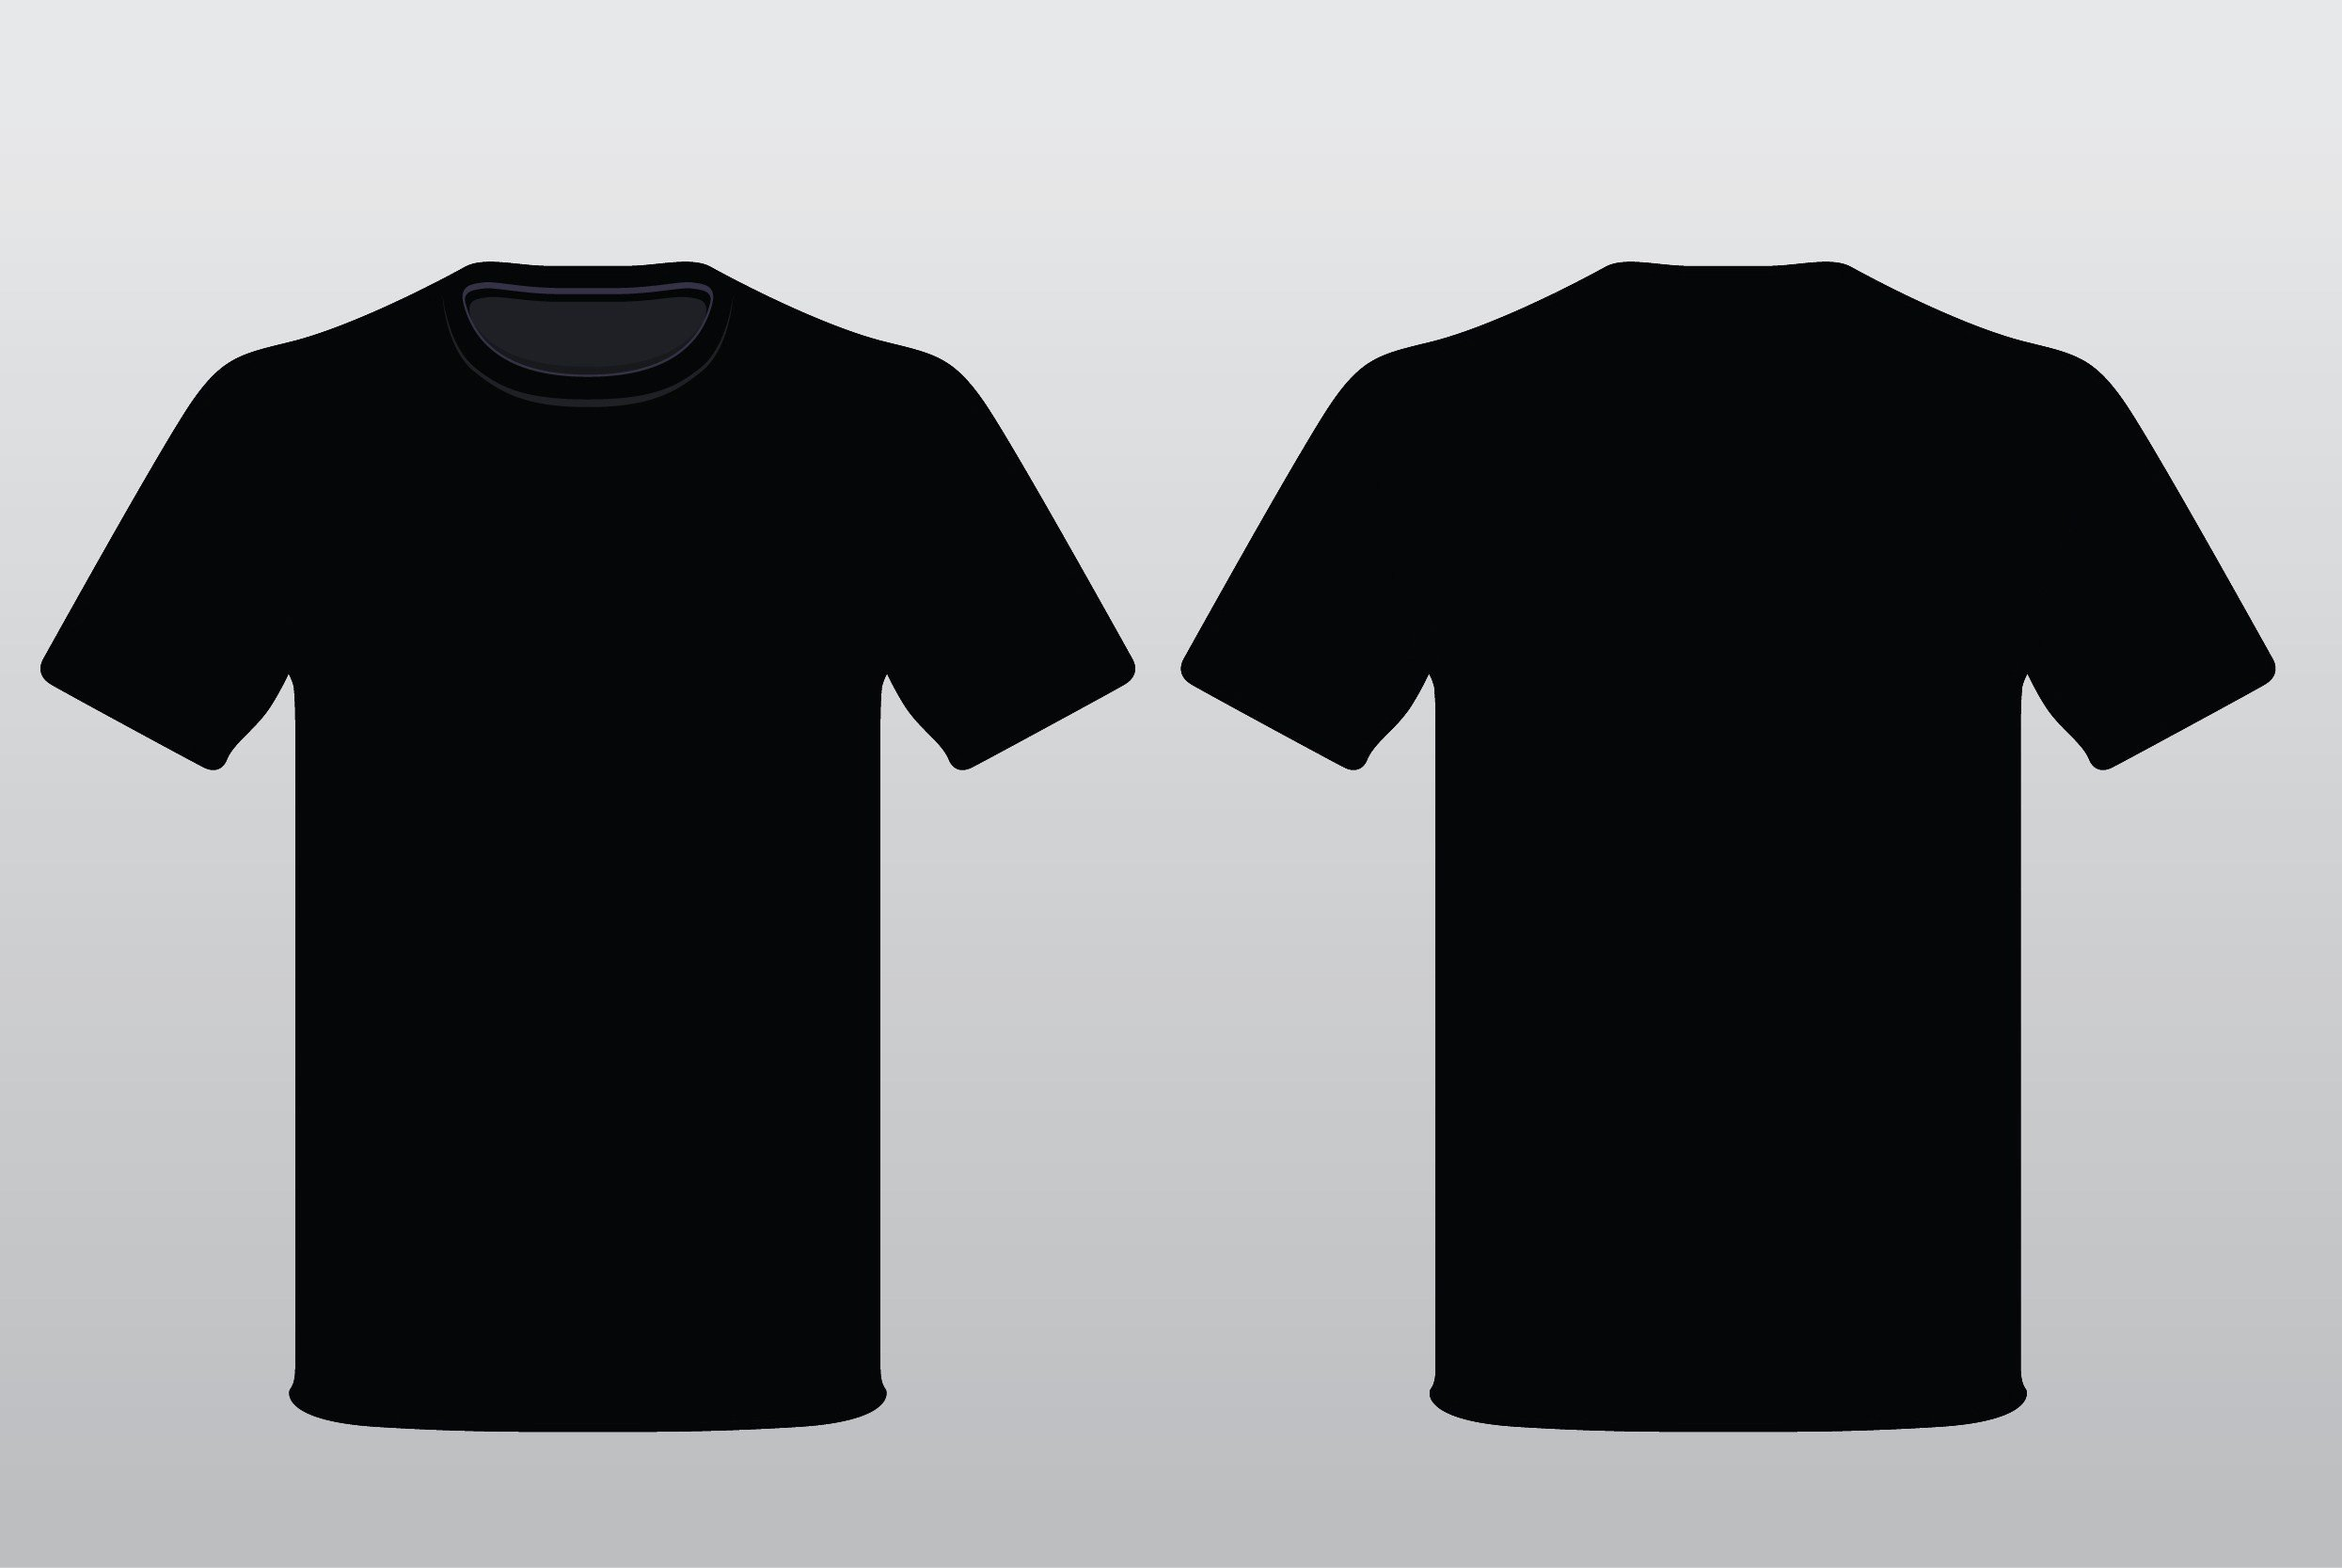 Tee Shirt Design Template All Over Print T Shirt Design Templates